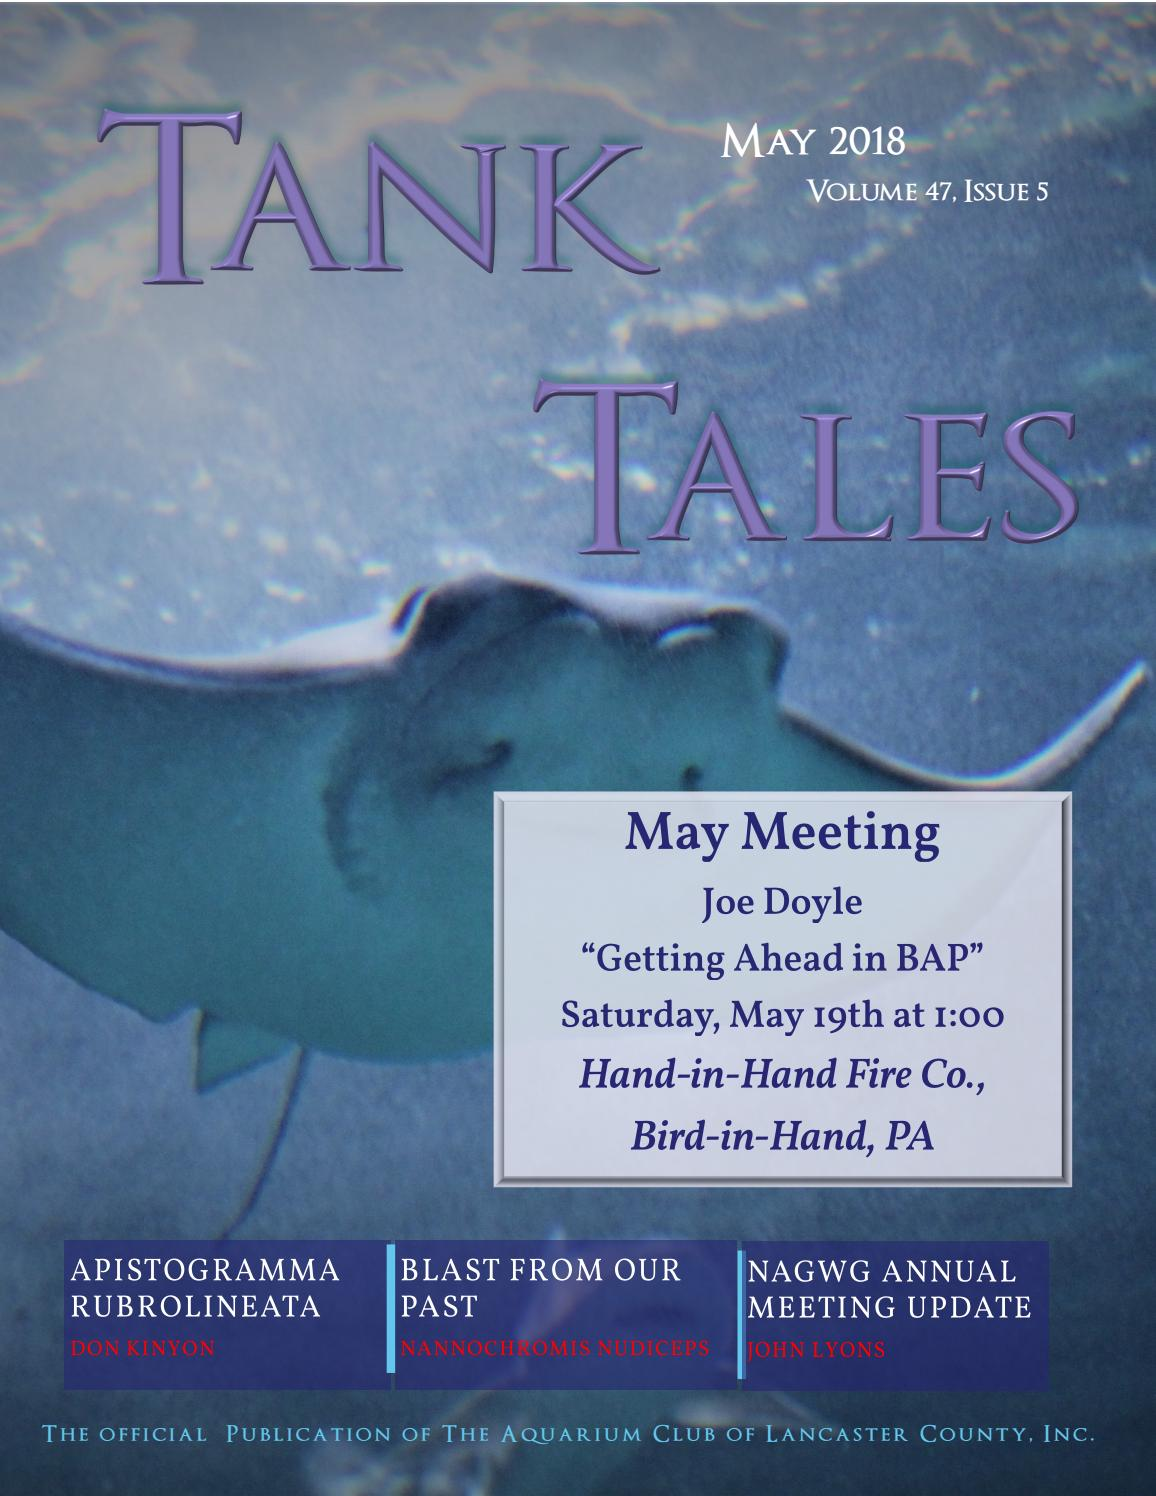 Tank Tales May 2018 by Aquarium Club of Lancaster County - issuu